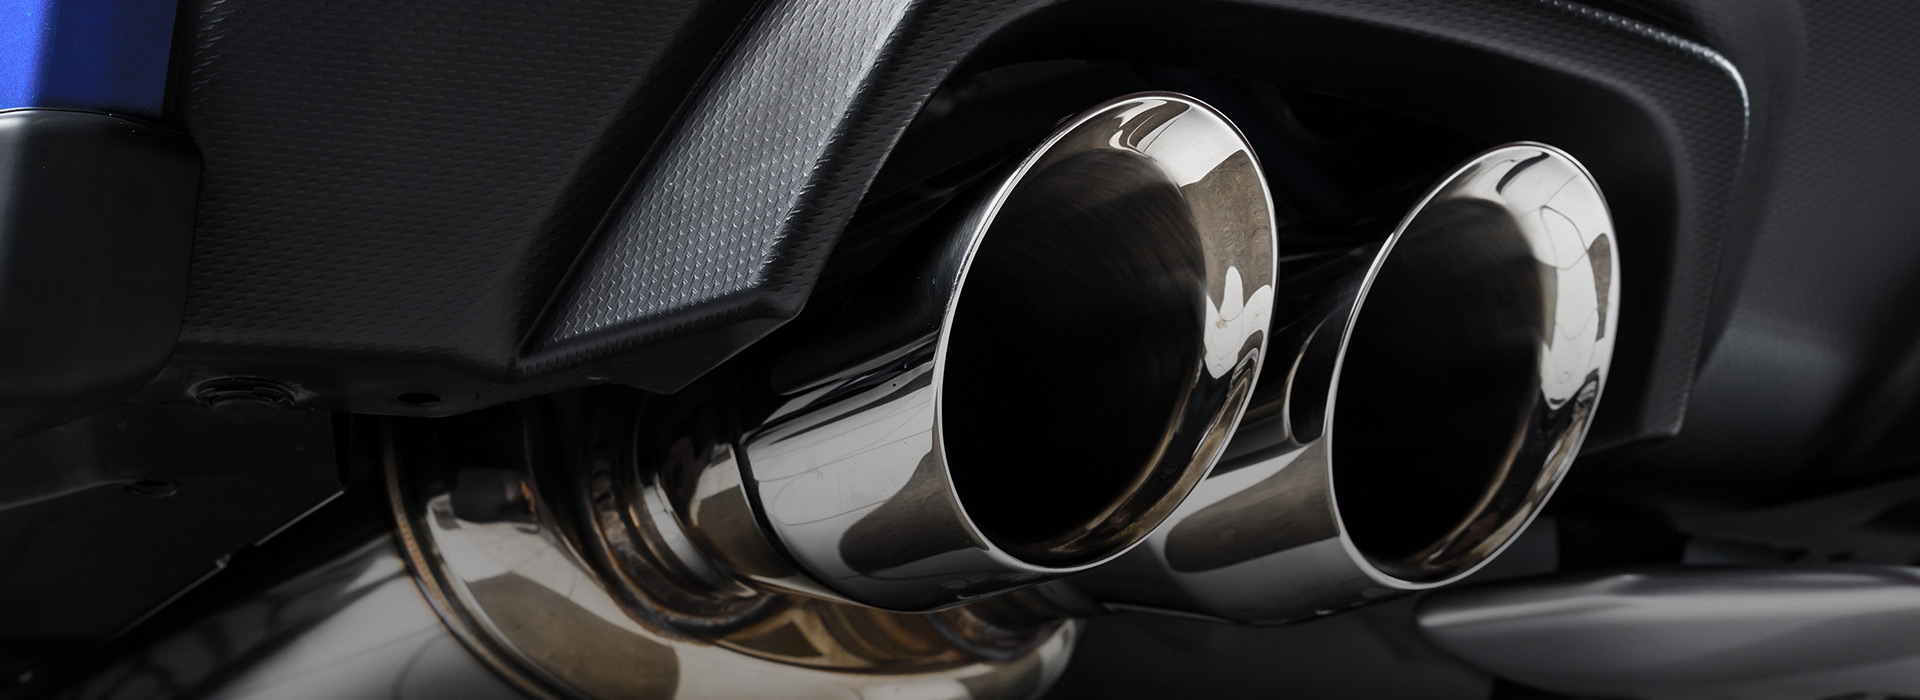 Shiny car exhausts